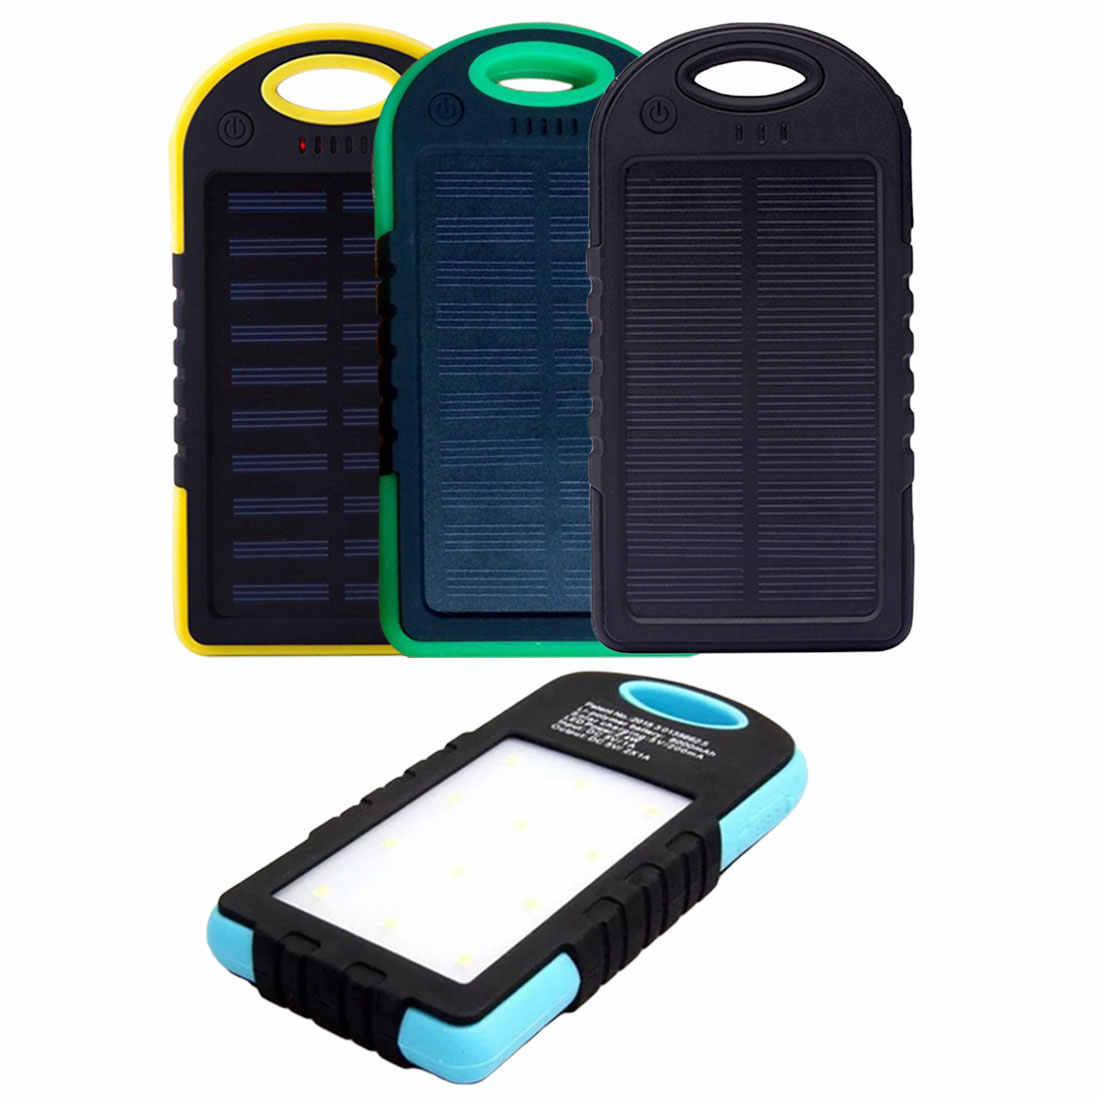 New Dual USB LED PCBA High Quality Circuit Board Solar Power Panel Home DIY Solar Panel Bank Battery DIY Home Portable Charger